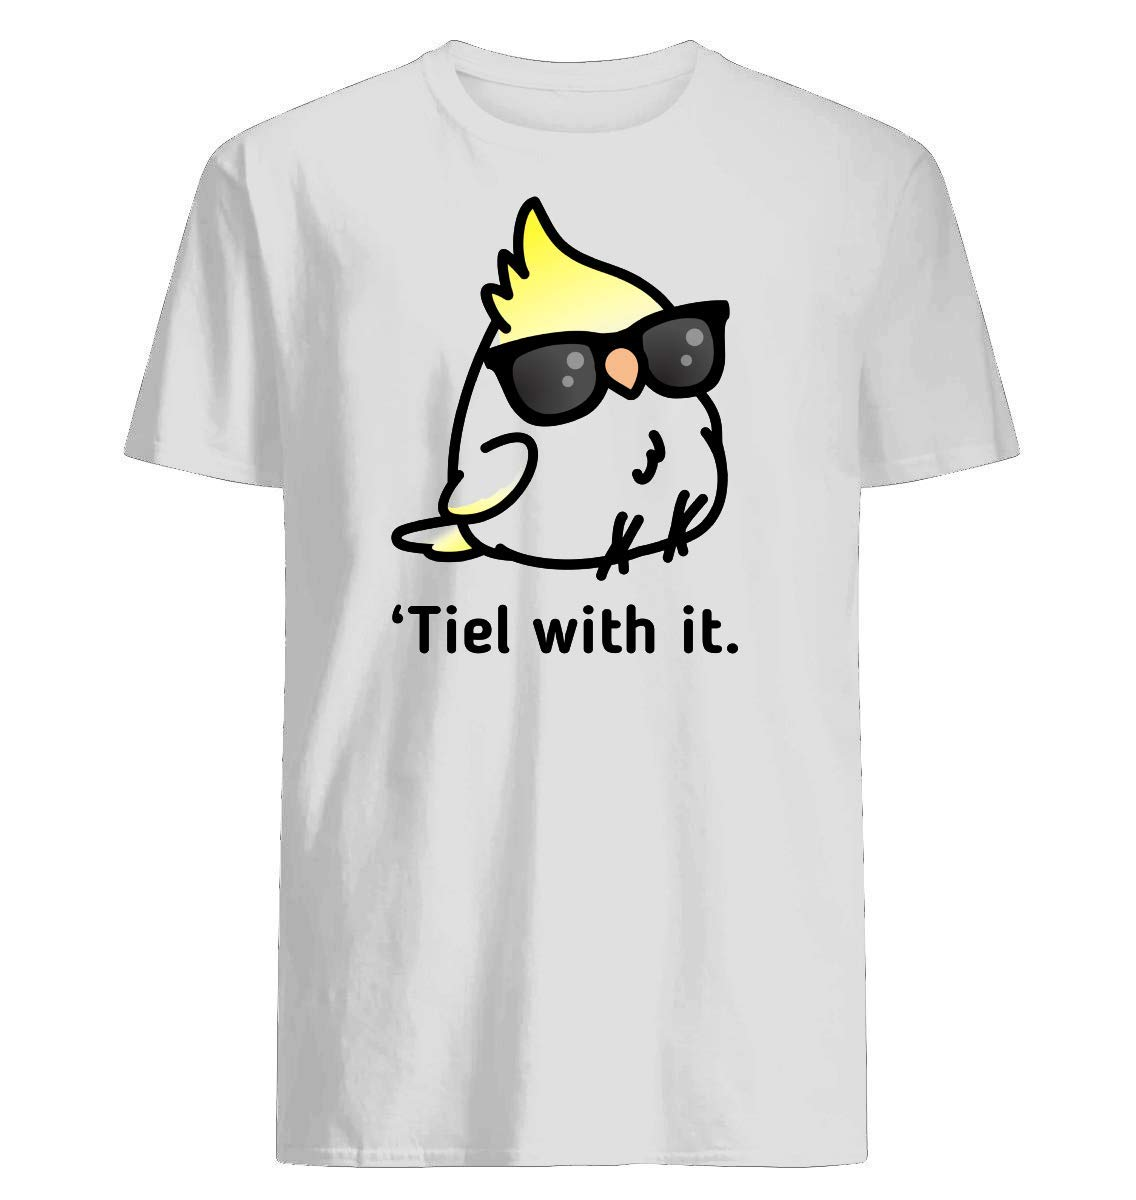 Tiel With It Short Sleeve Graphic Fashion T-shirt